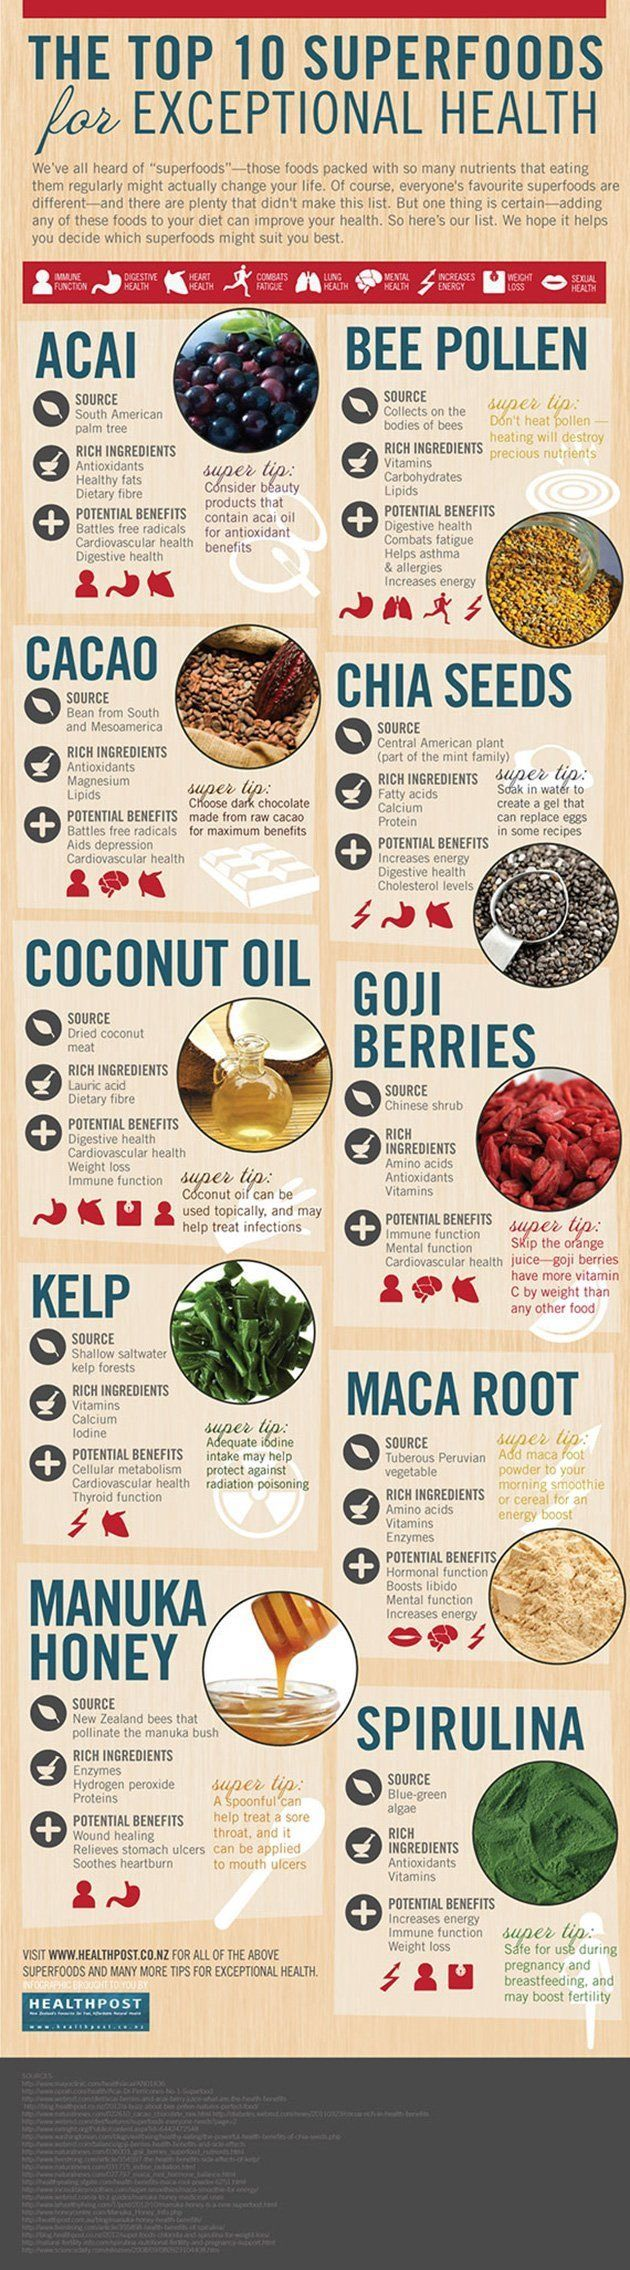 The Top 10 Superfoods for Exceptional Health Infographic